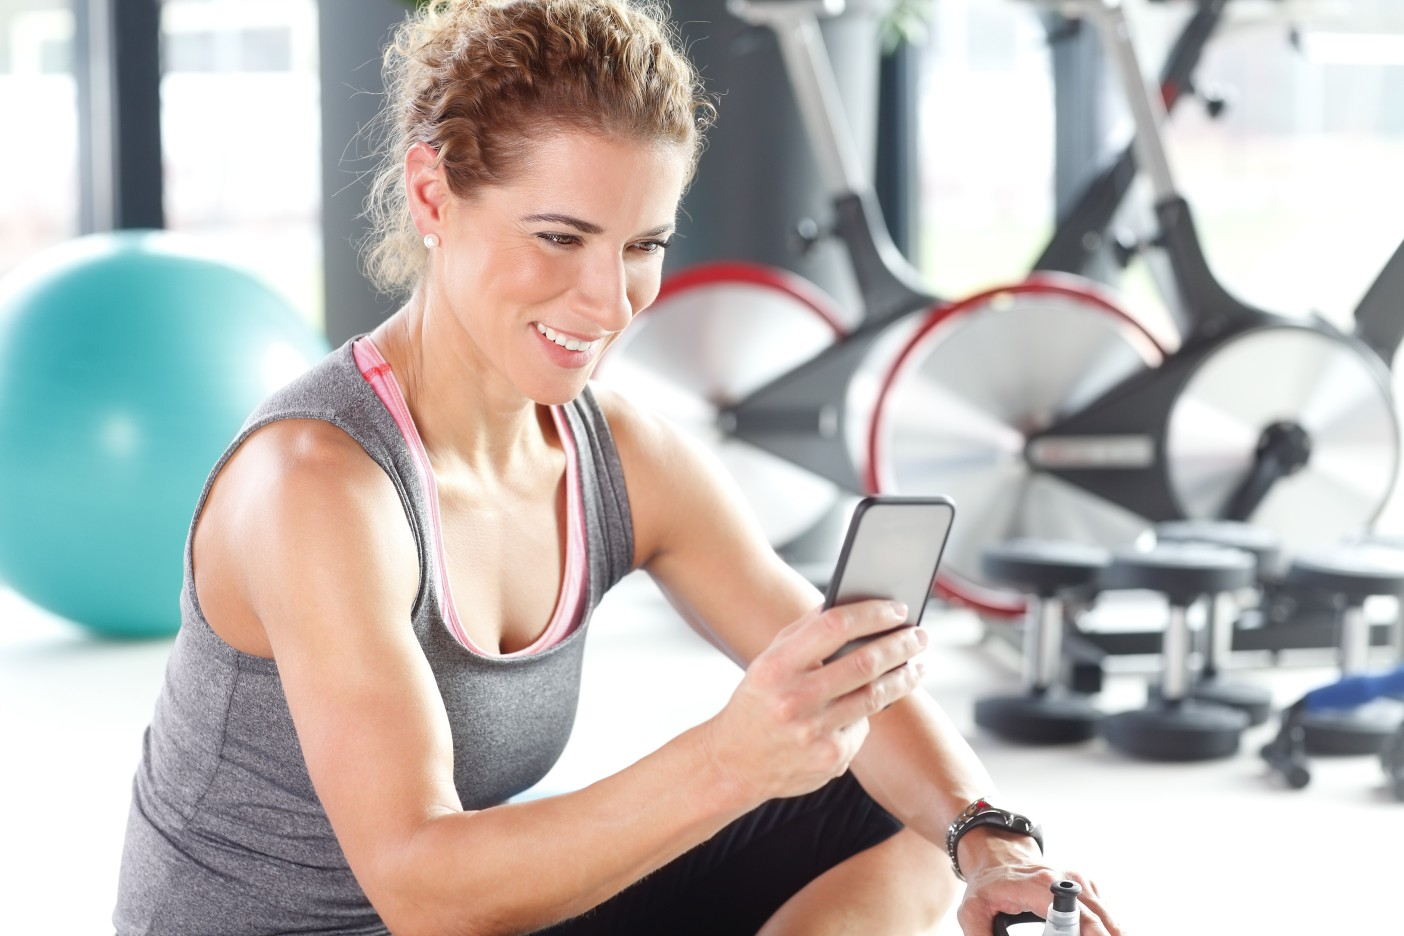 Portrait of personal trainer woman sitting at gym after fitness workout and checking sport app in her smartphone.